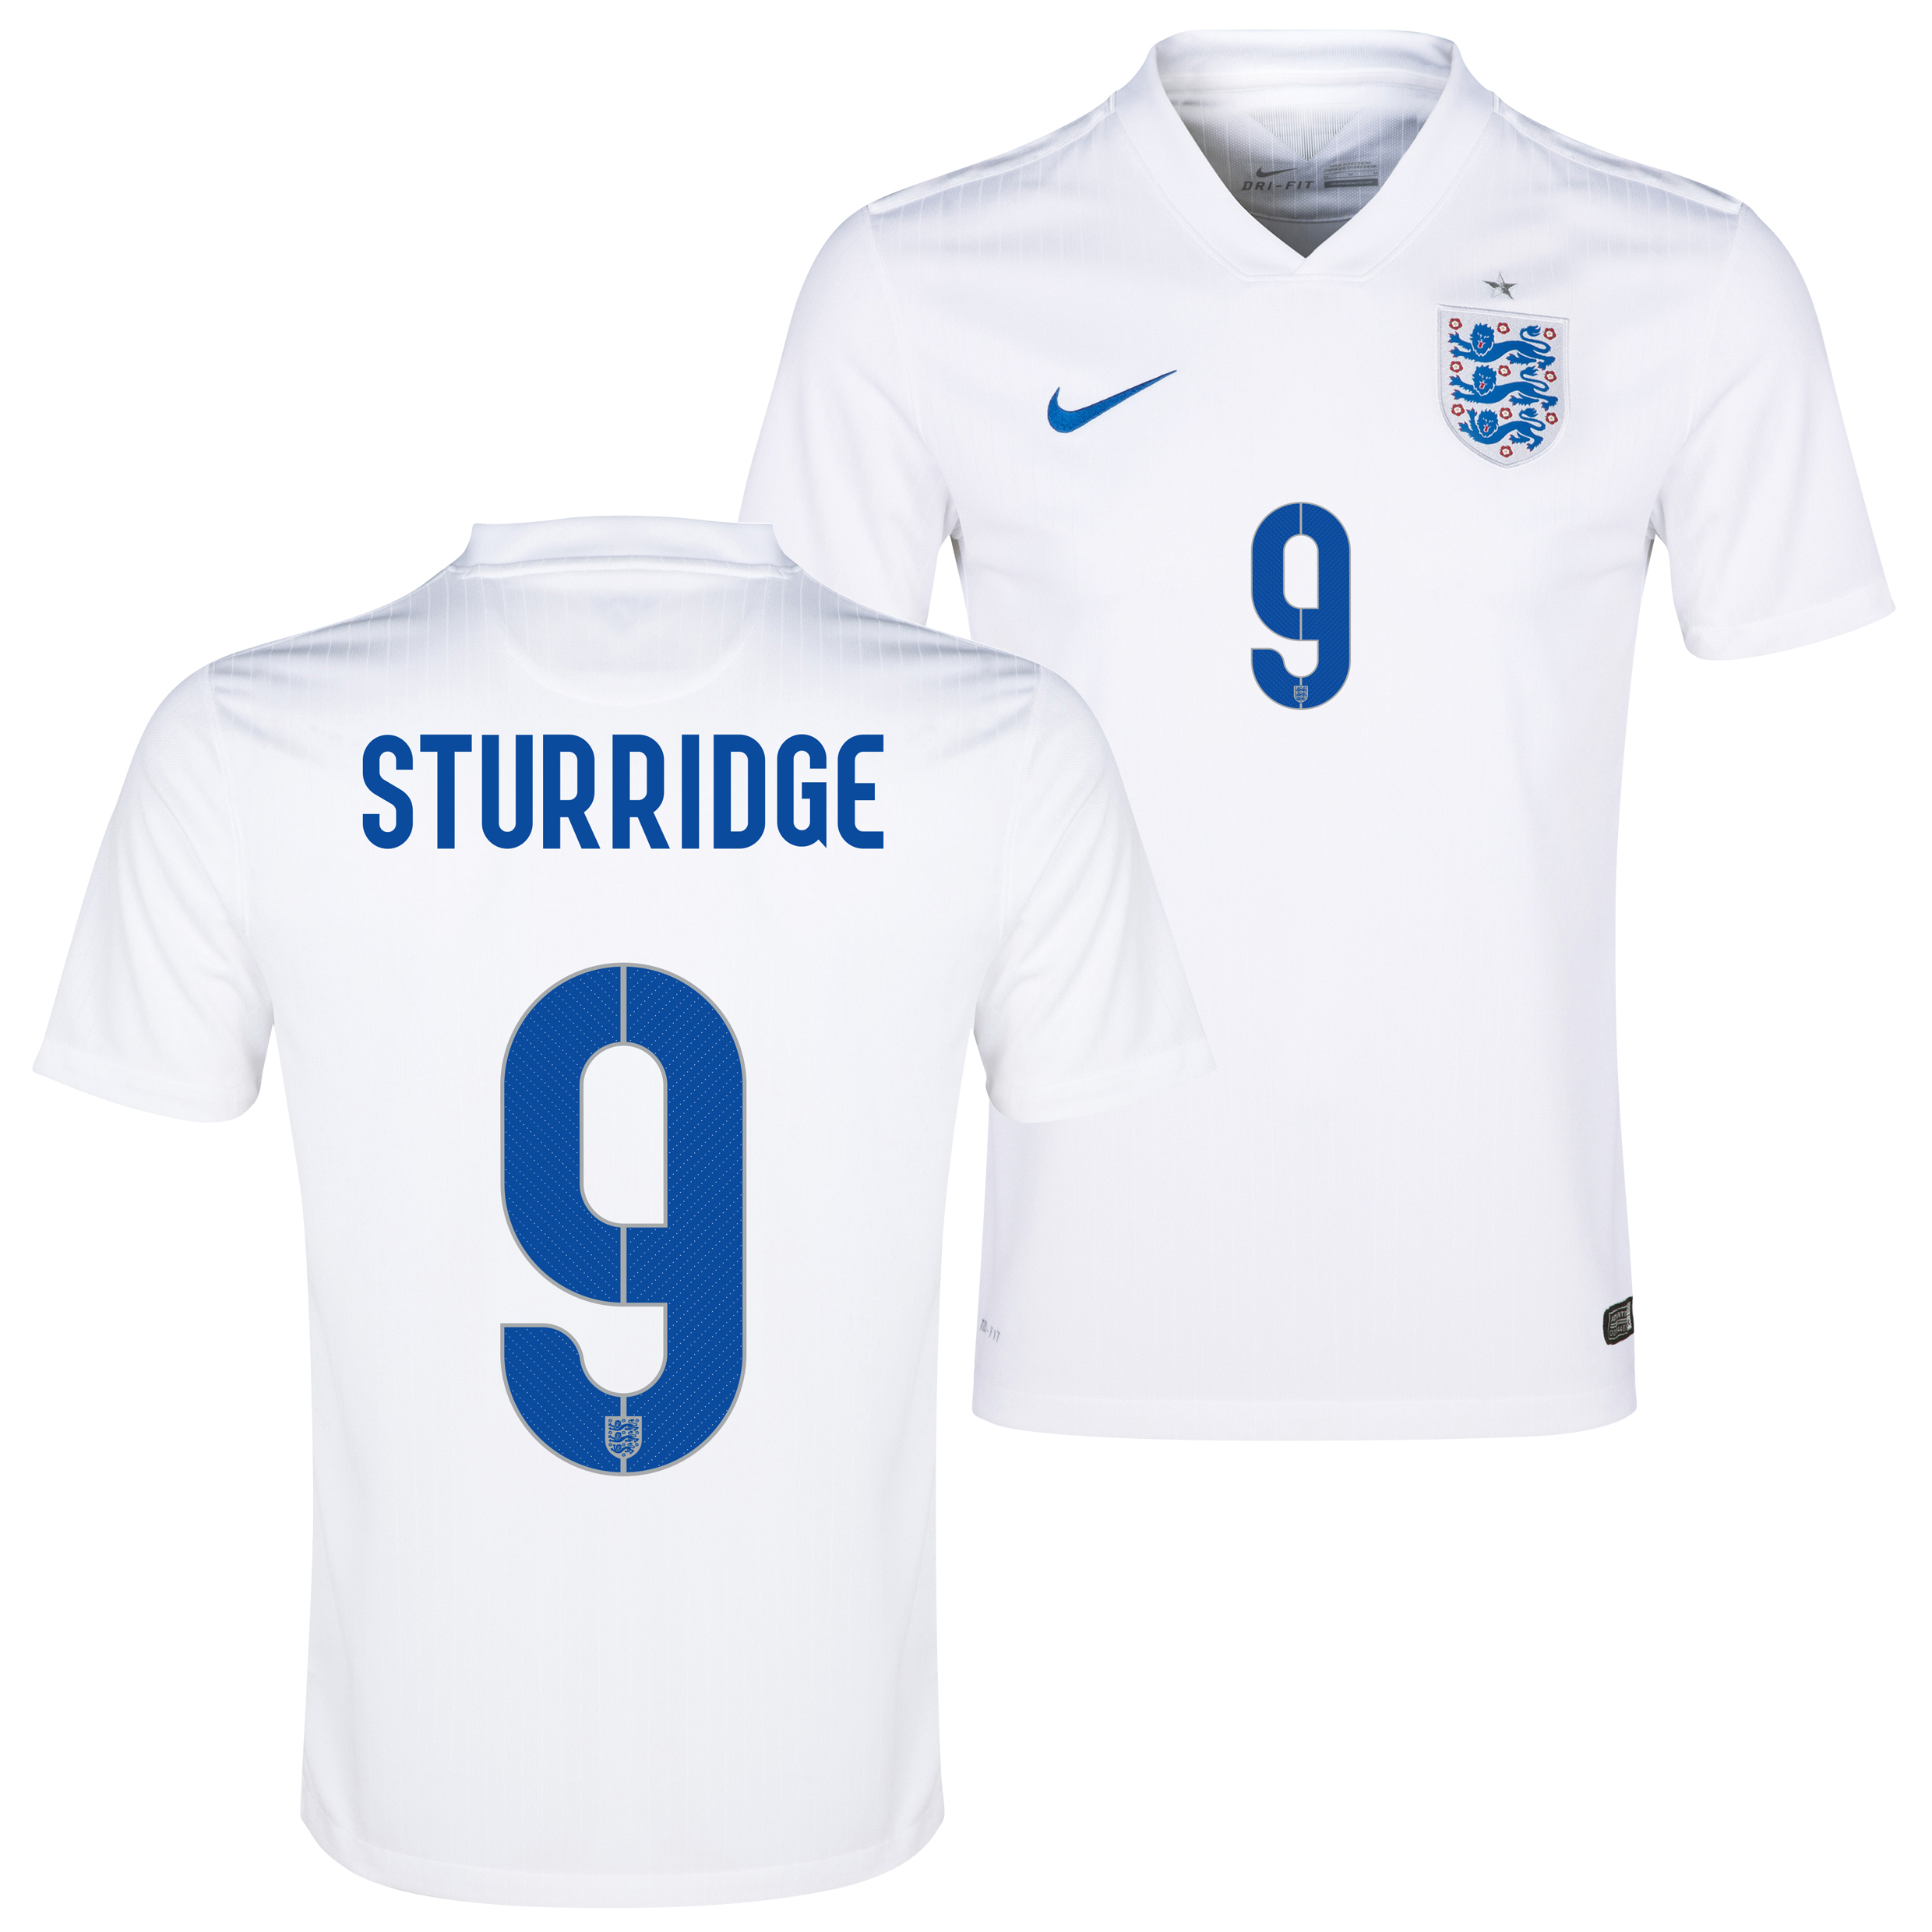 England Home Shirt 2014/15 White with Sturridge 9 printing